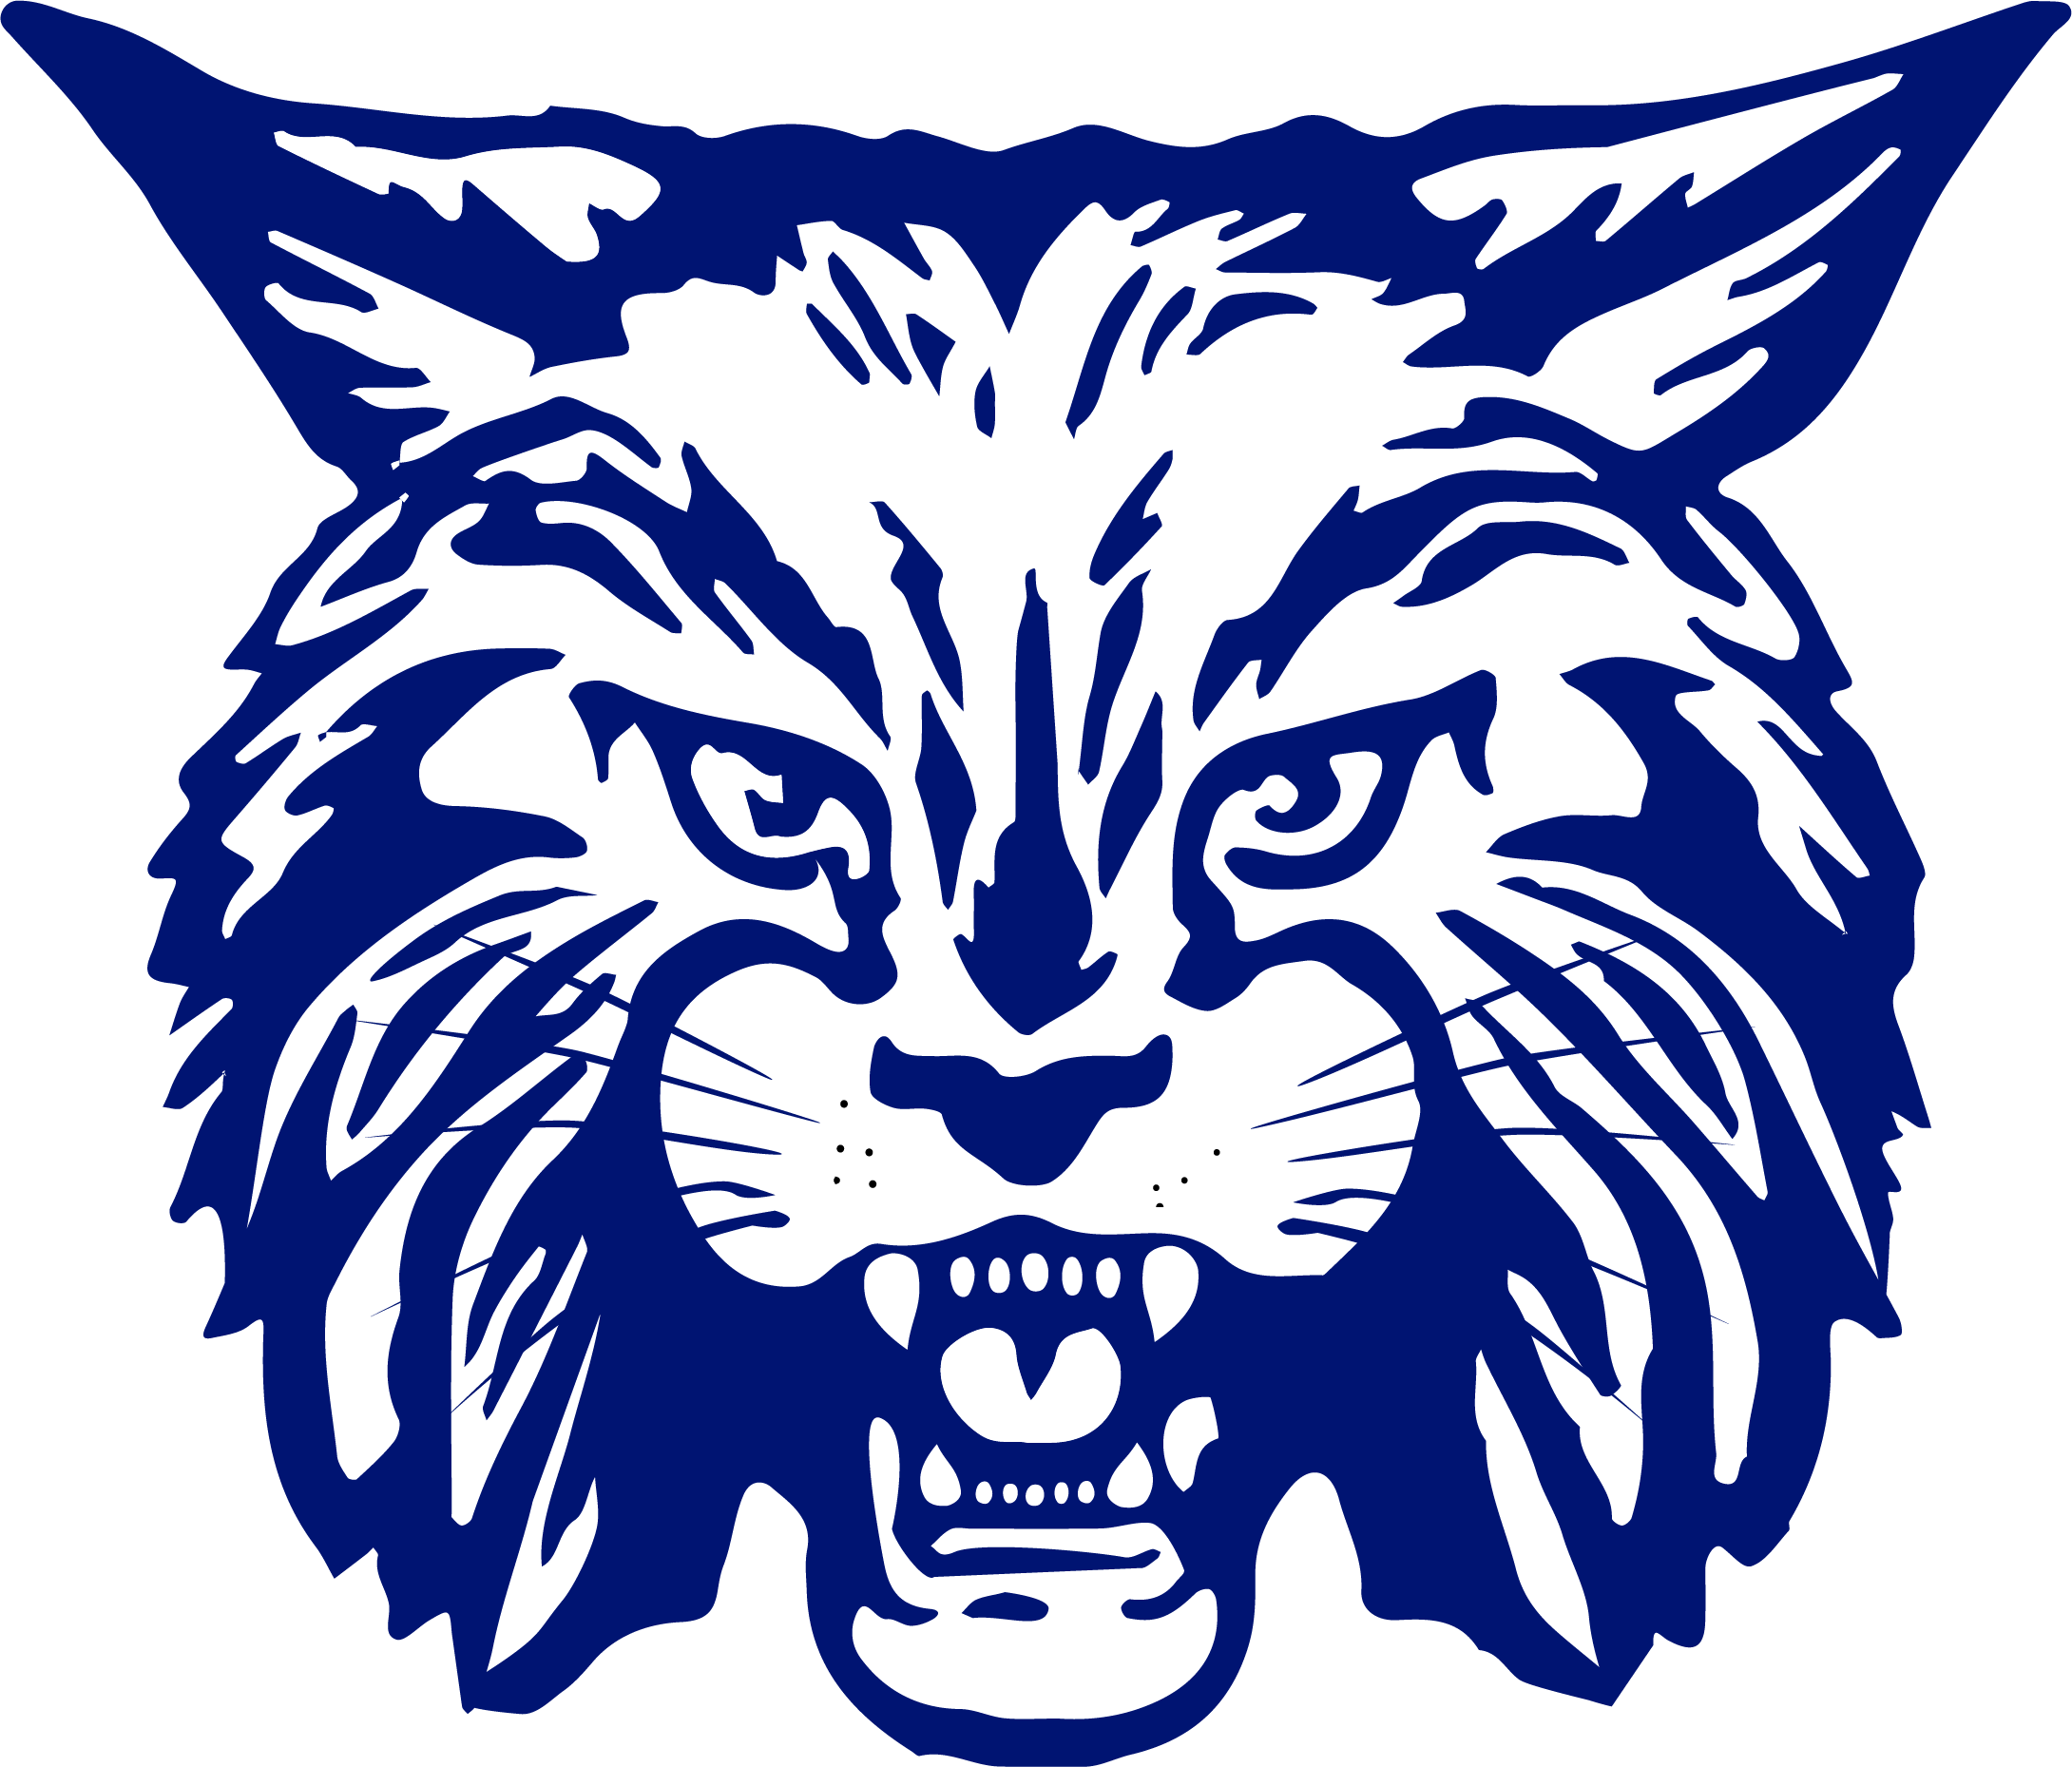 Bobcat football clipart image royalty free stock Bangor Township Schools image royalty free stock